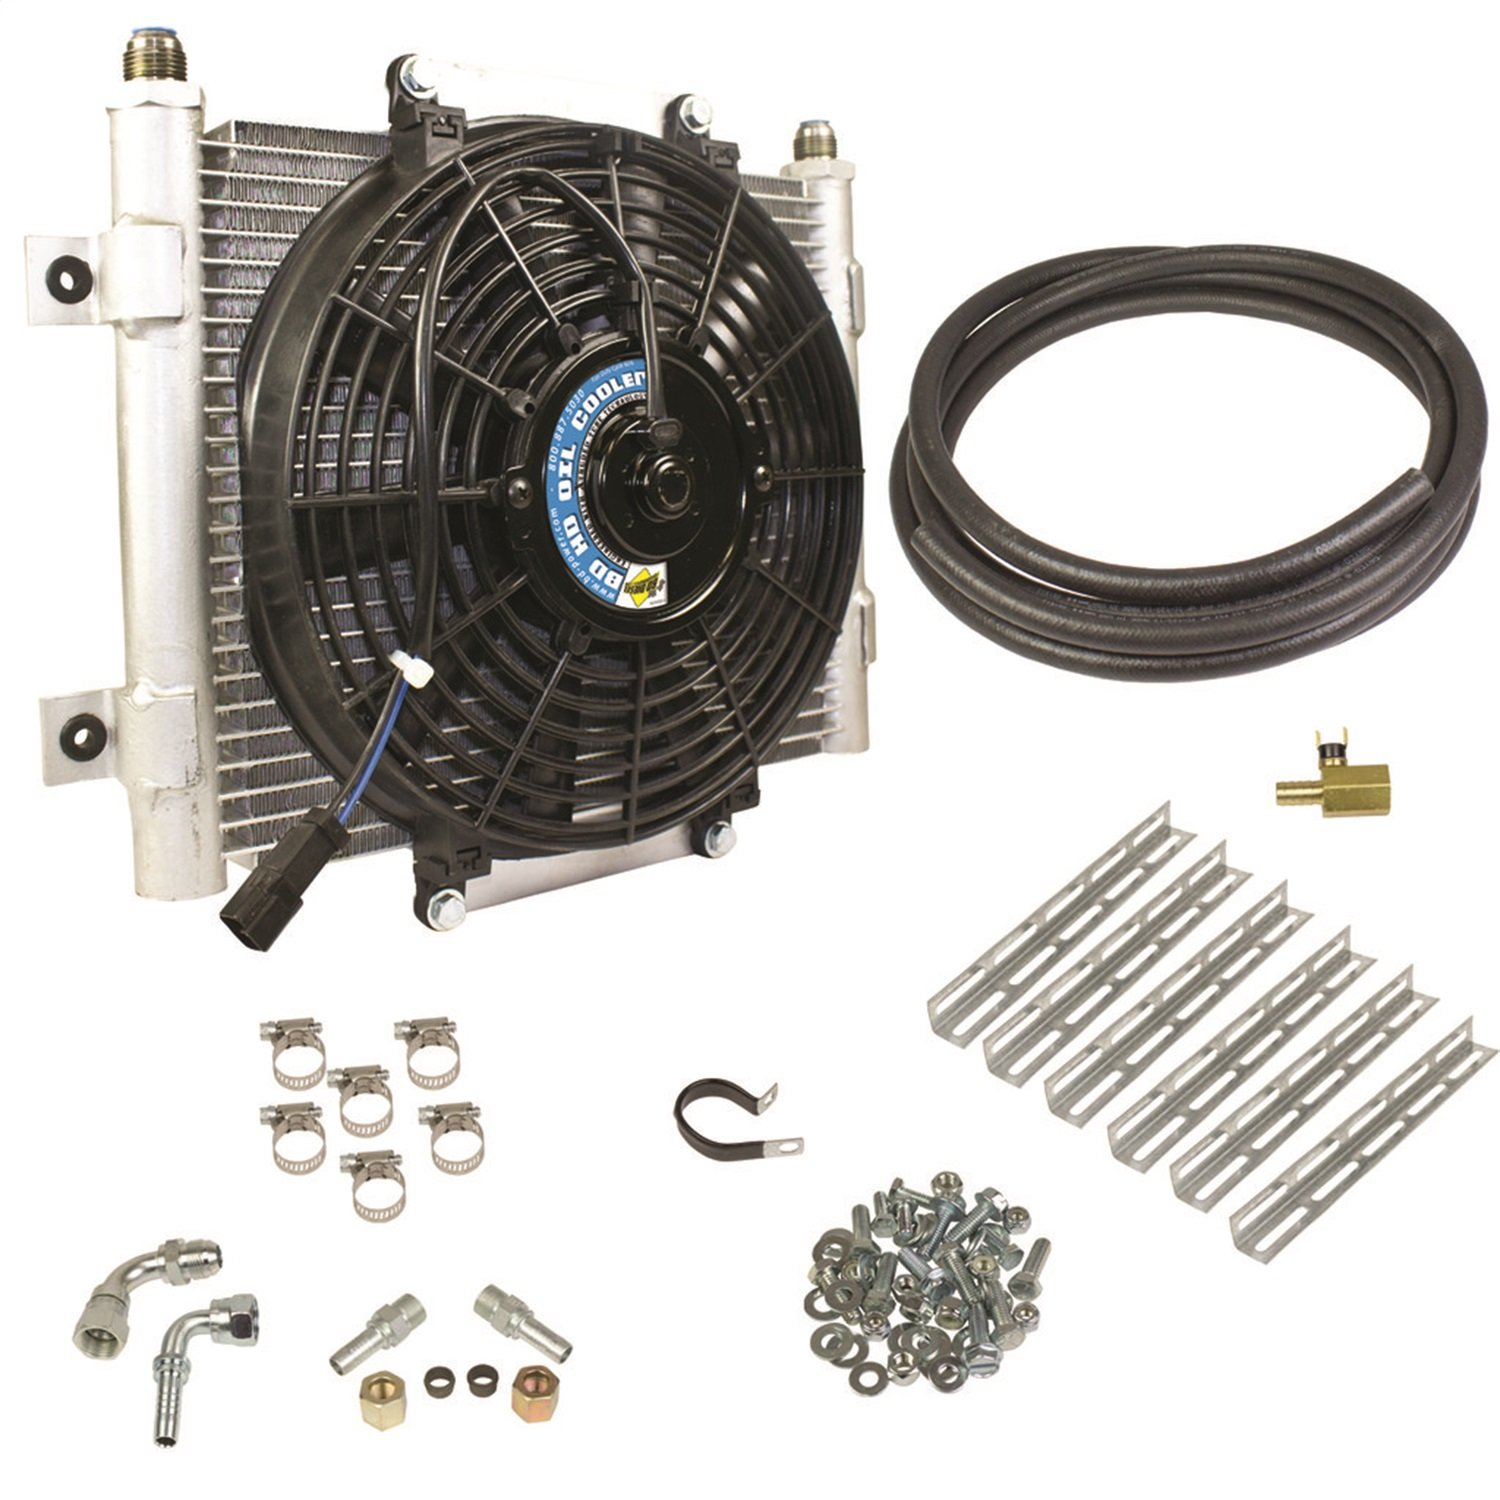 BD Diesel 1030606-5//8 Xtruded Auxiliary Transmission Oil Cooler Kit 5//8in Tubing Incl Cooler//Brackets//Wiring Harness//Fittings//Temp Sensor//Sensor Adapter//Hoses//Bypass Frt//Rear Tube Eliminator//Hdw Xtruded Auxiliary Transmission Oil Cooler Kit